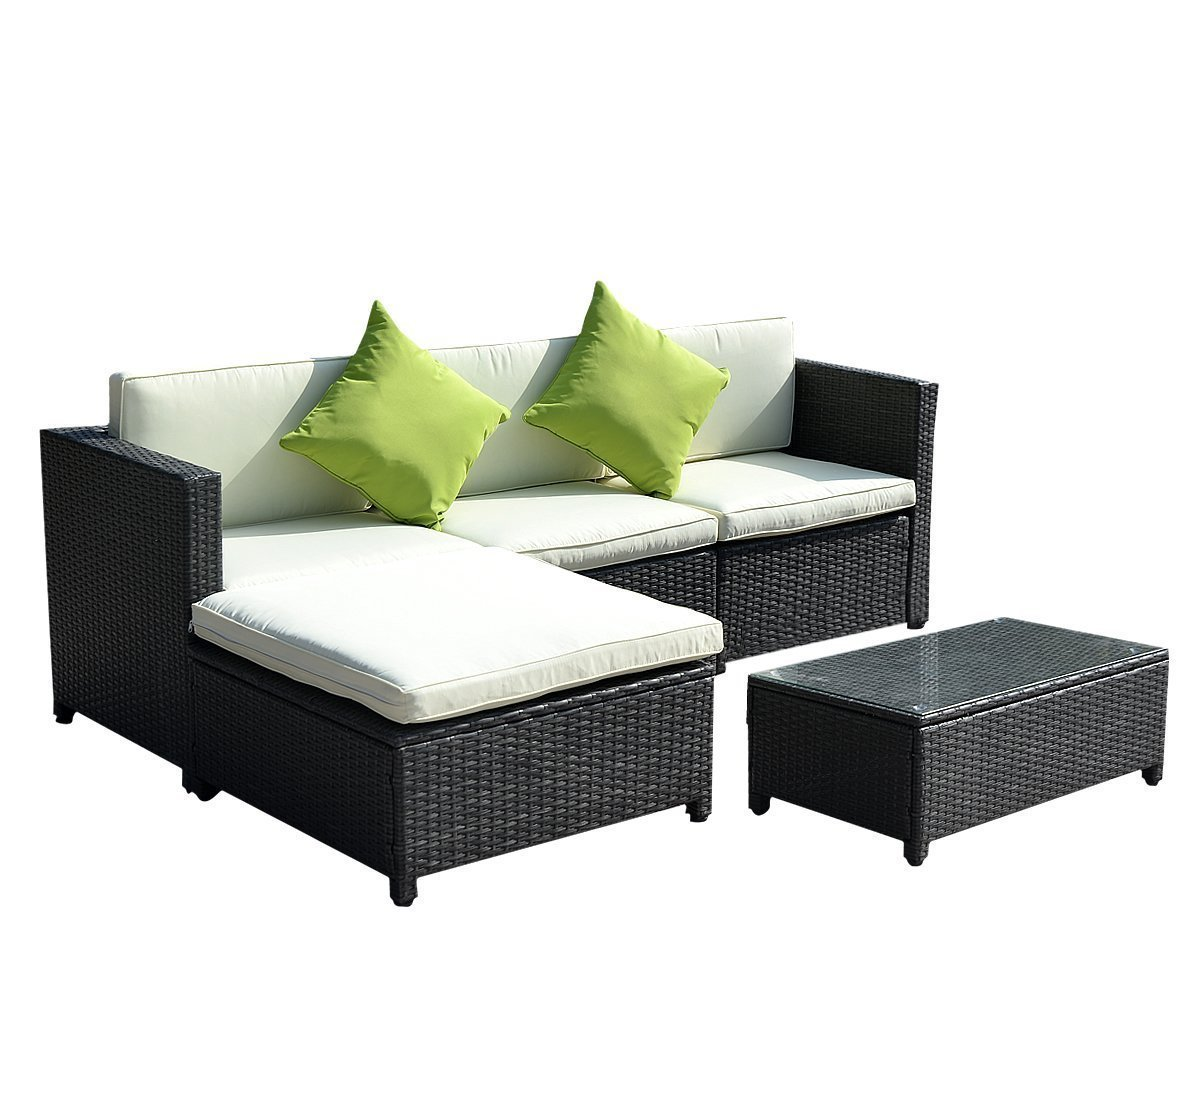 Amazon.com : Goplus® Outdoor Patio 5PC Furniture Sectional PE Wicker Rattan Sofa  Set Deck Couch Black : Garden U0026 Outdoor